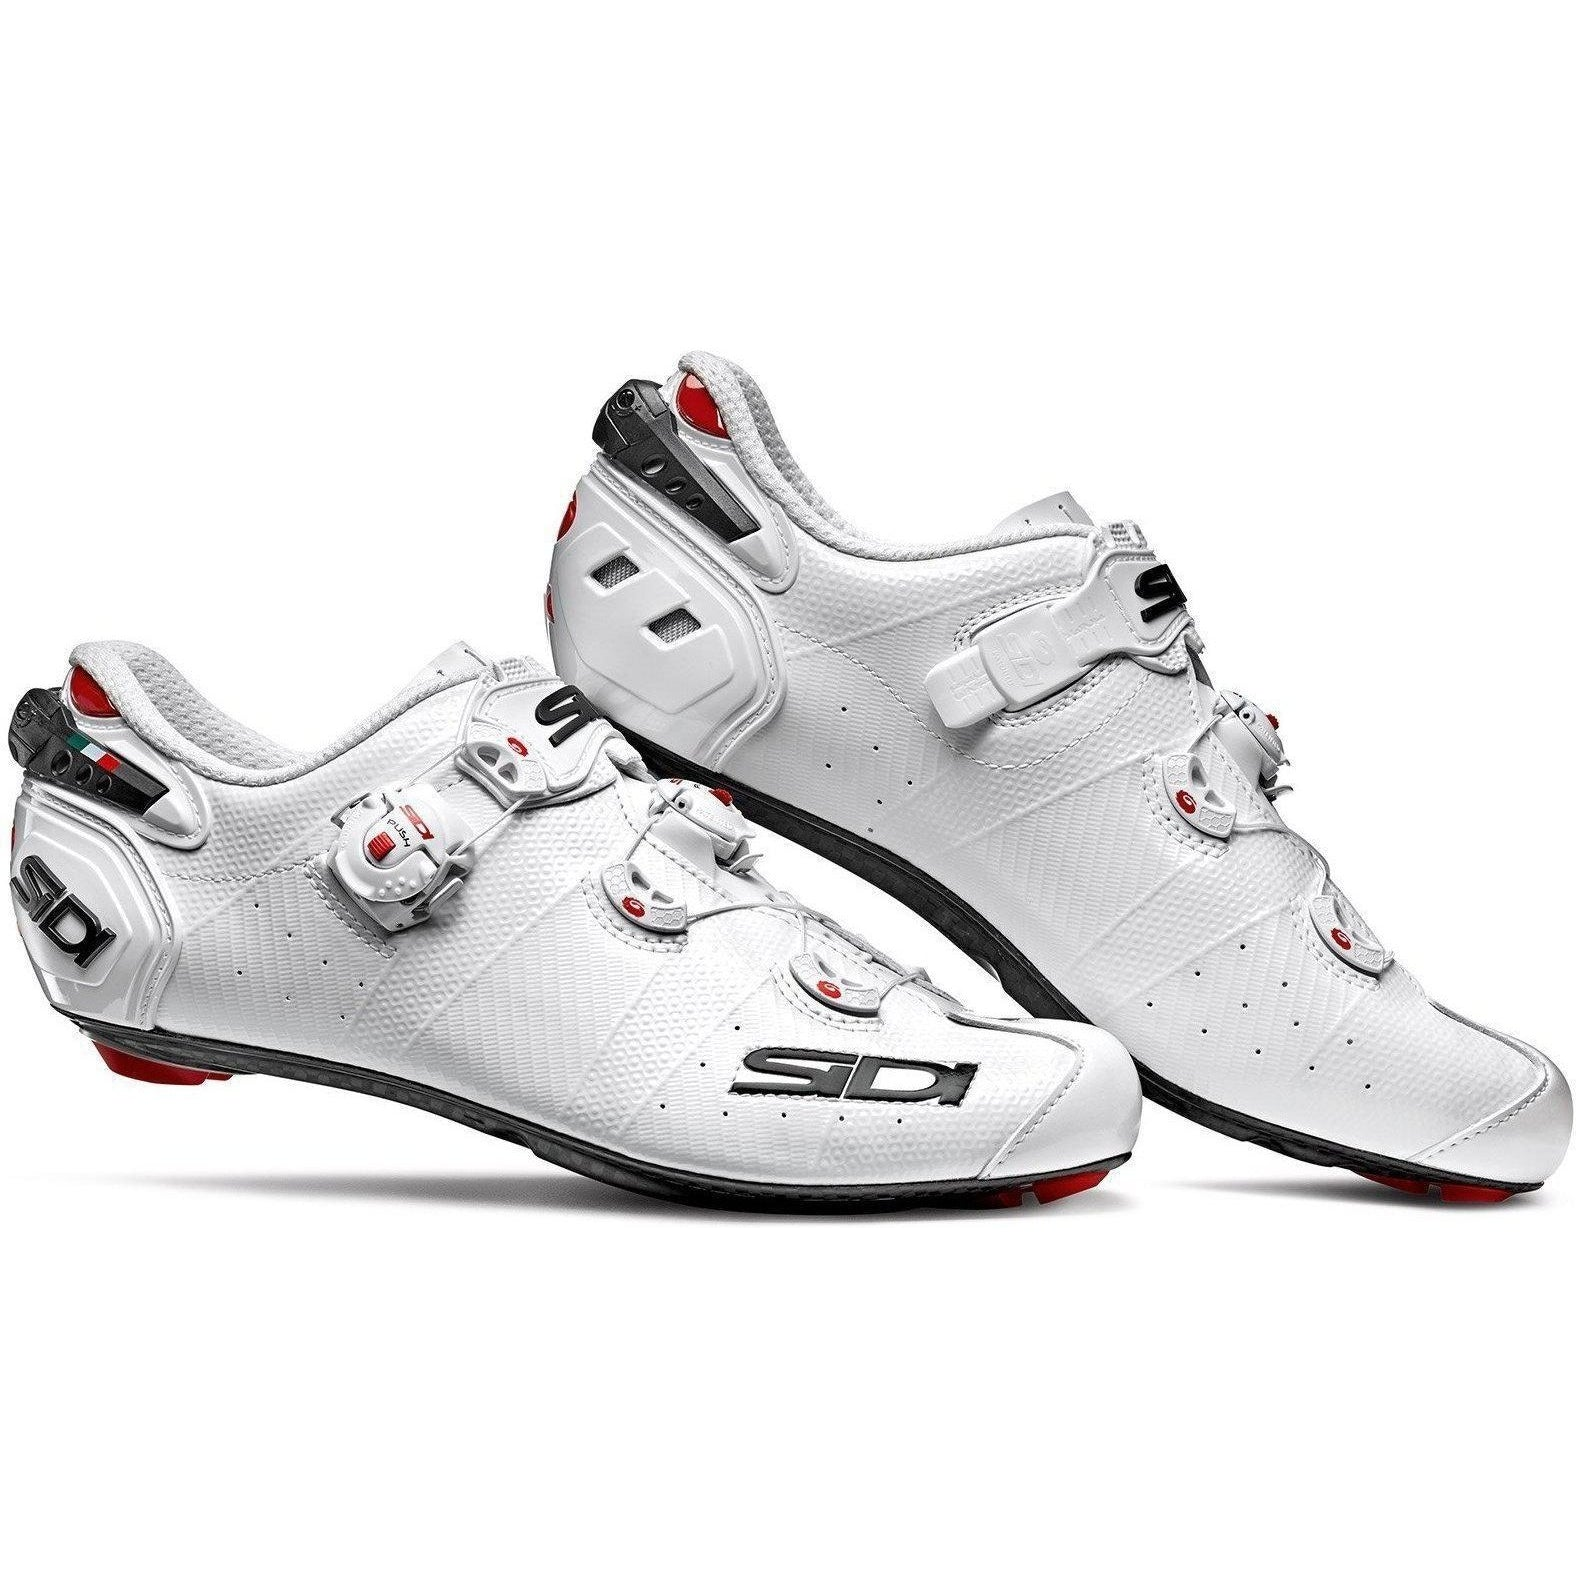 Sidi-Sidi Wire 2 Carbon Road Shoes-White/White-38-SIWIRE2CBIBI38-saddleback-elite-performance-cycling